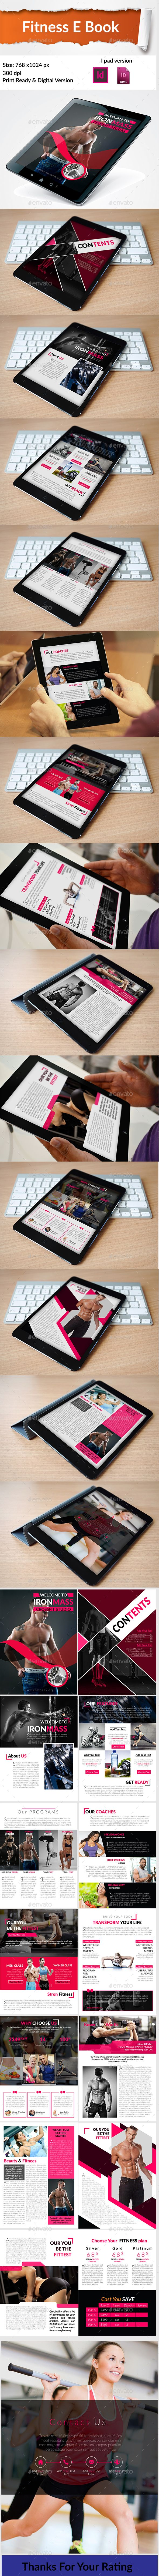 Fitness E-Book Template InDesign INDD - 14 Pages